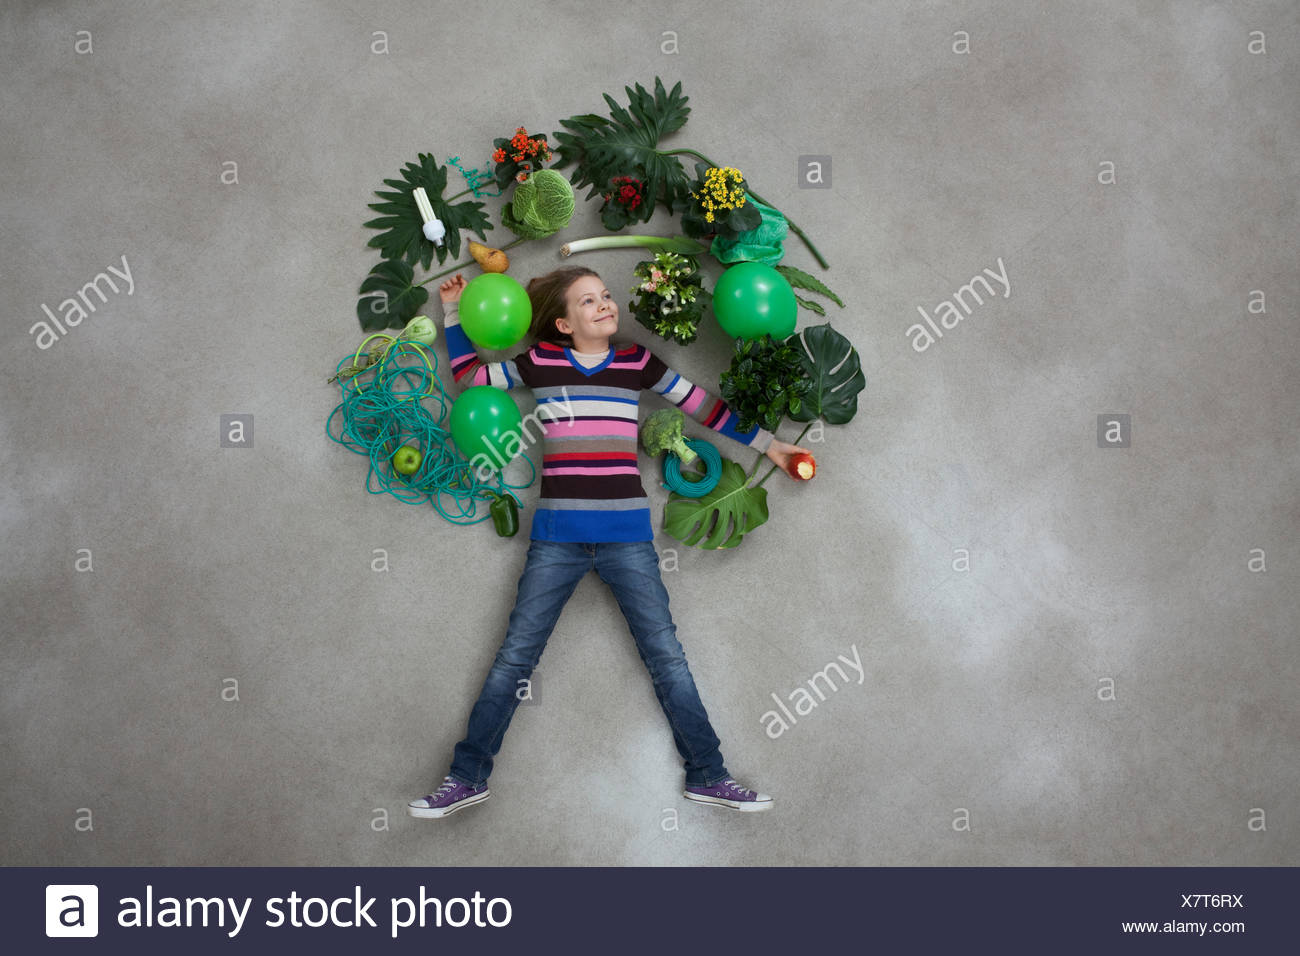 Girl forming tree shape on gray background - Stock Image